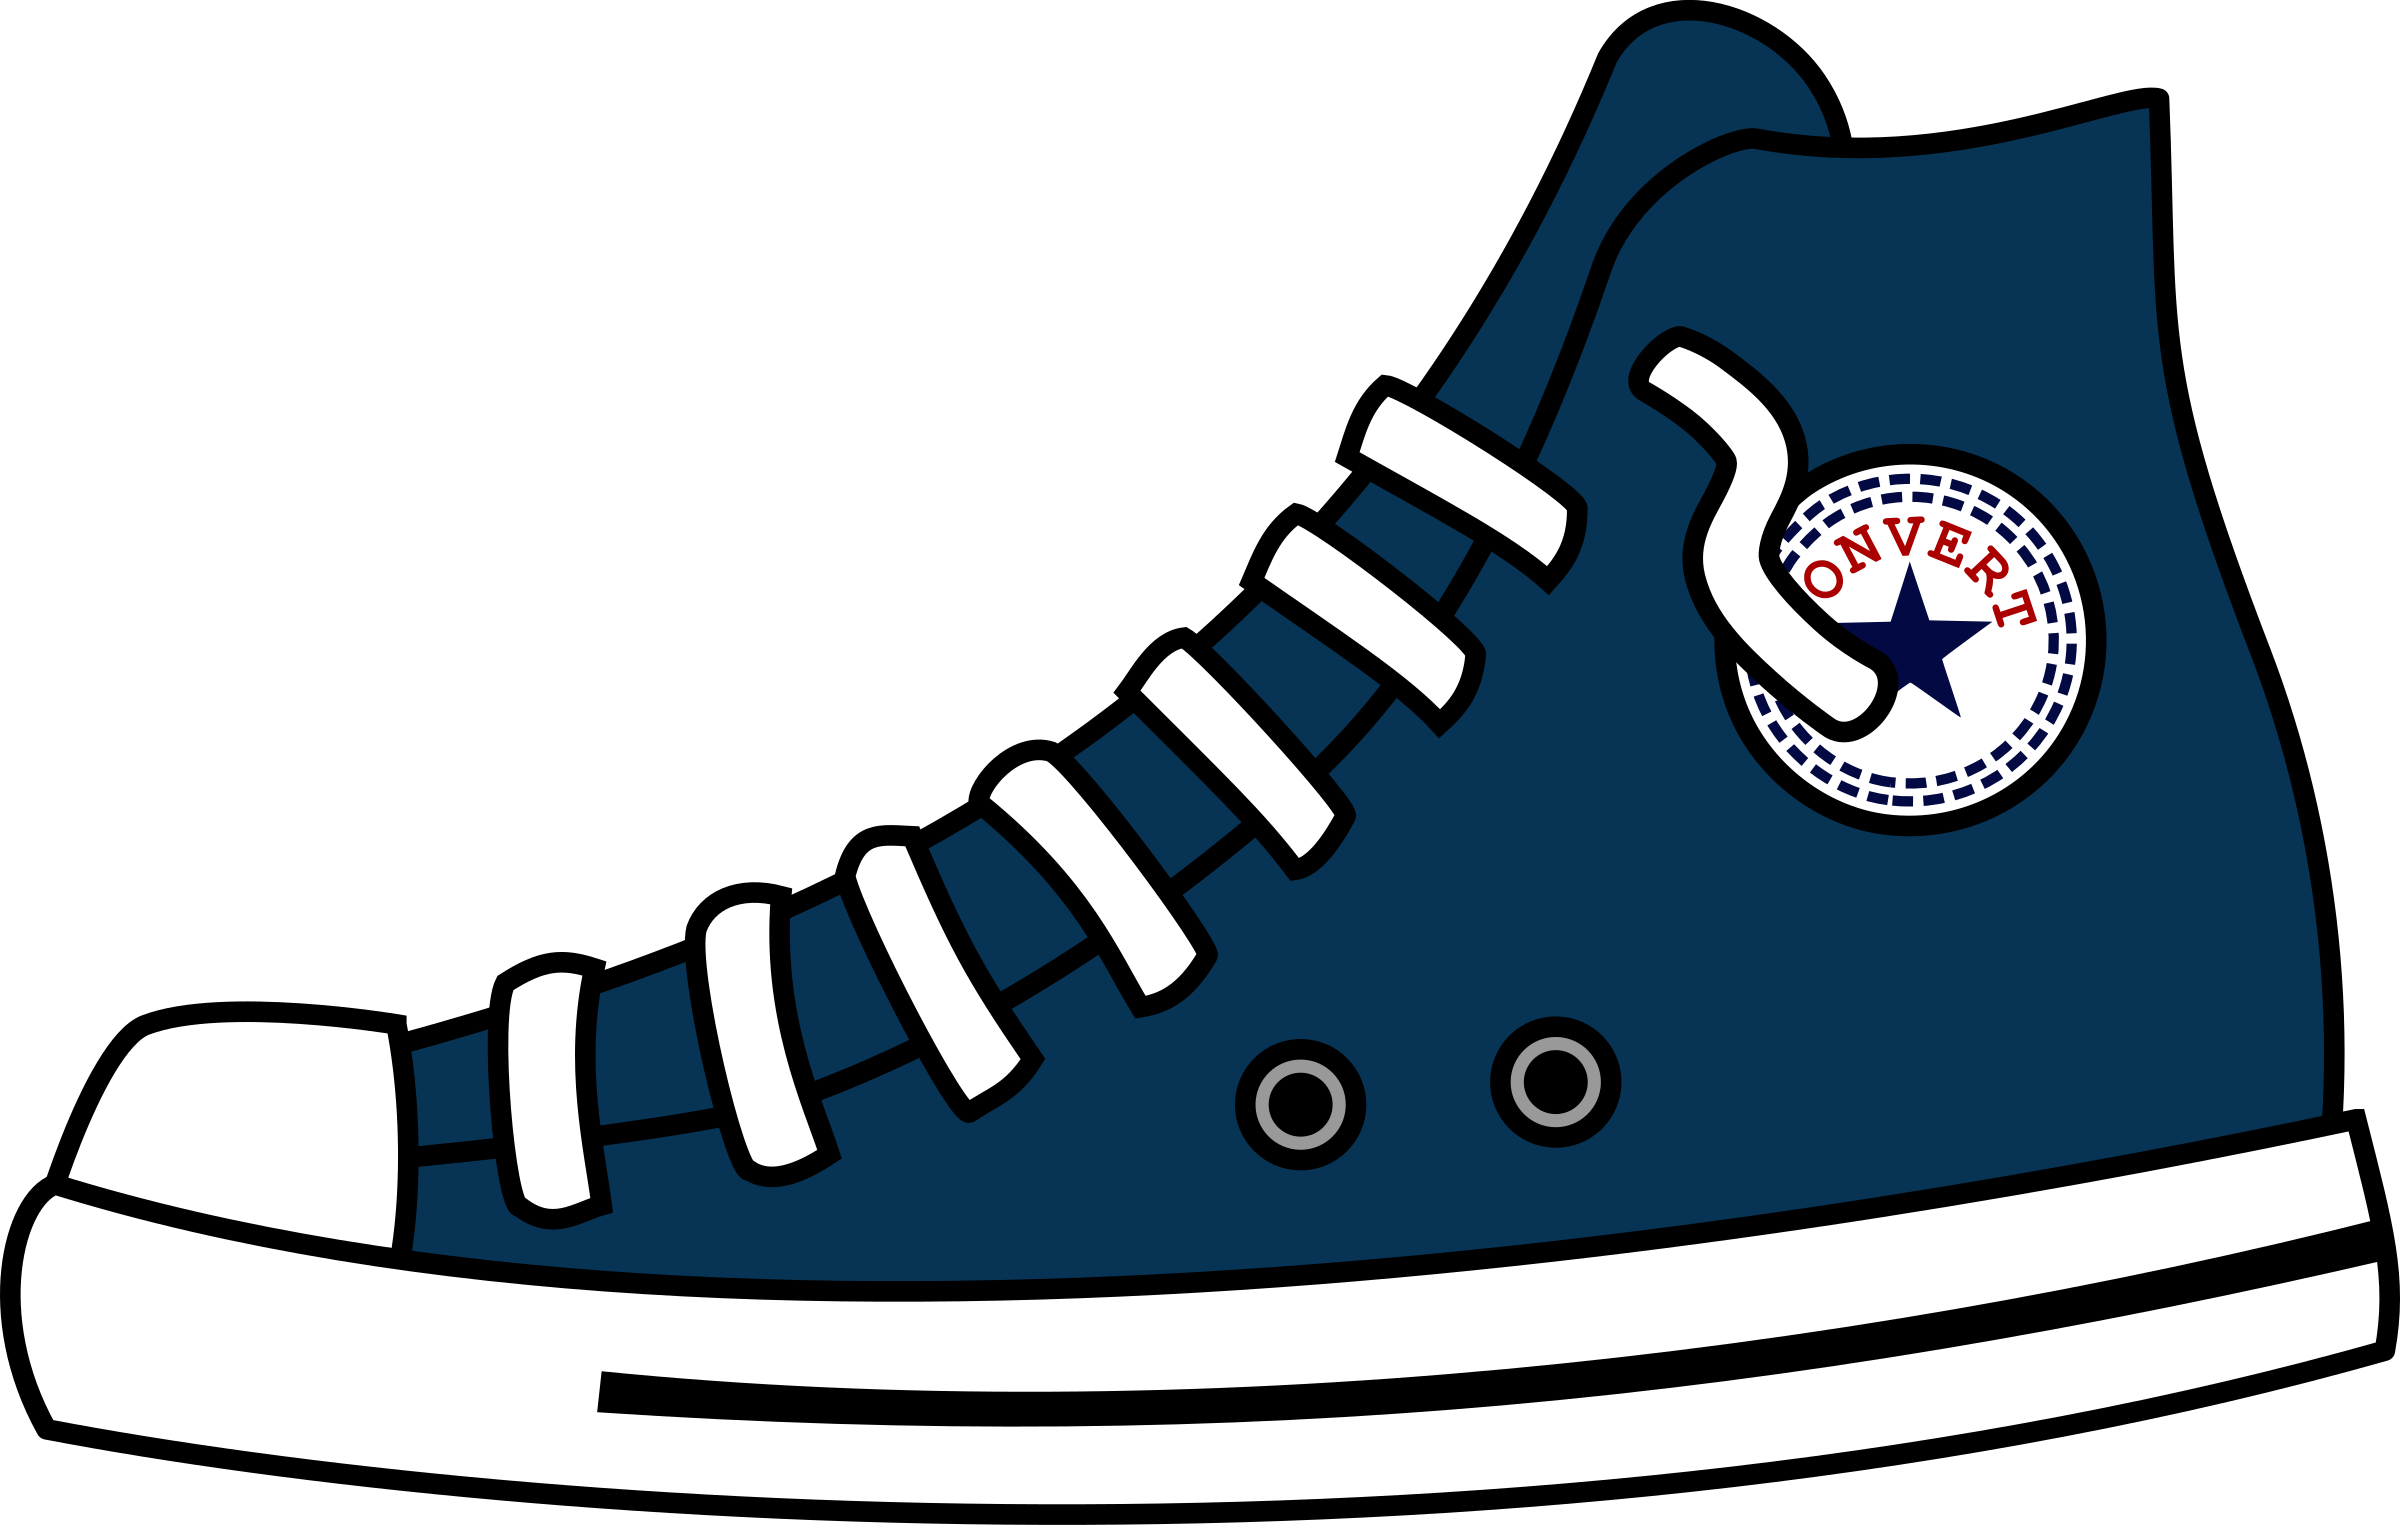 clipart stock Converse clipart. High top shoes big.